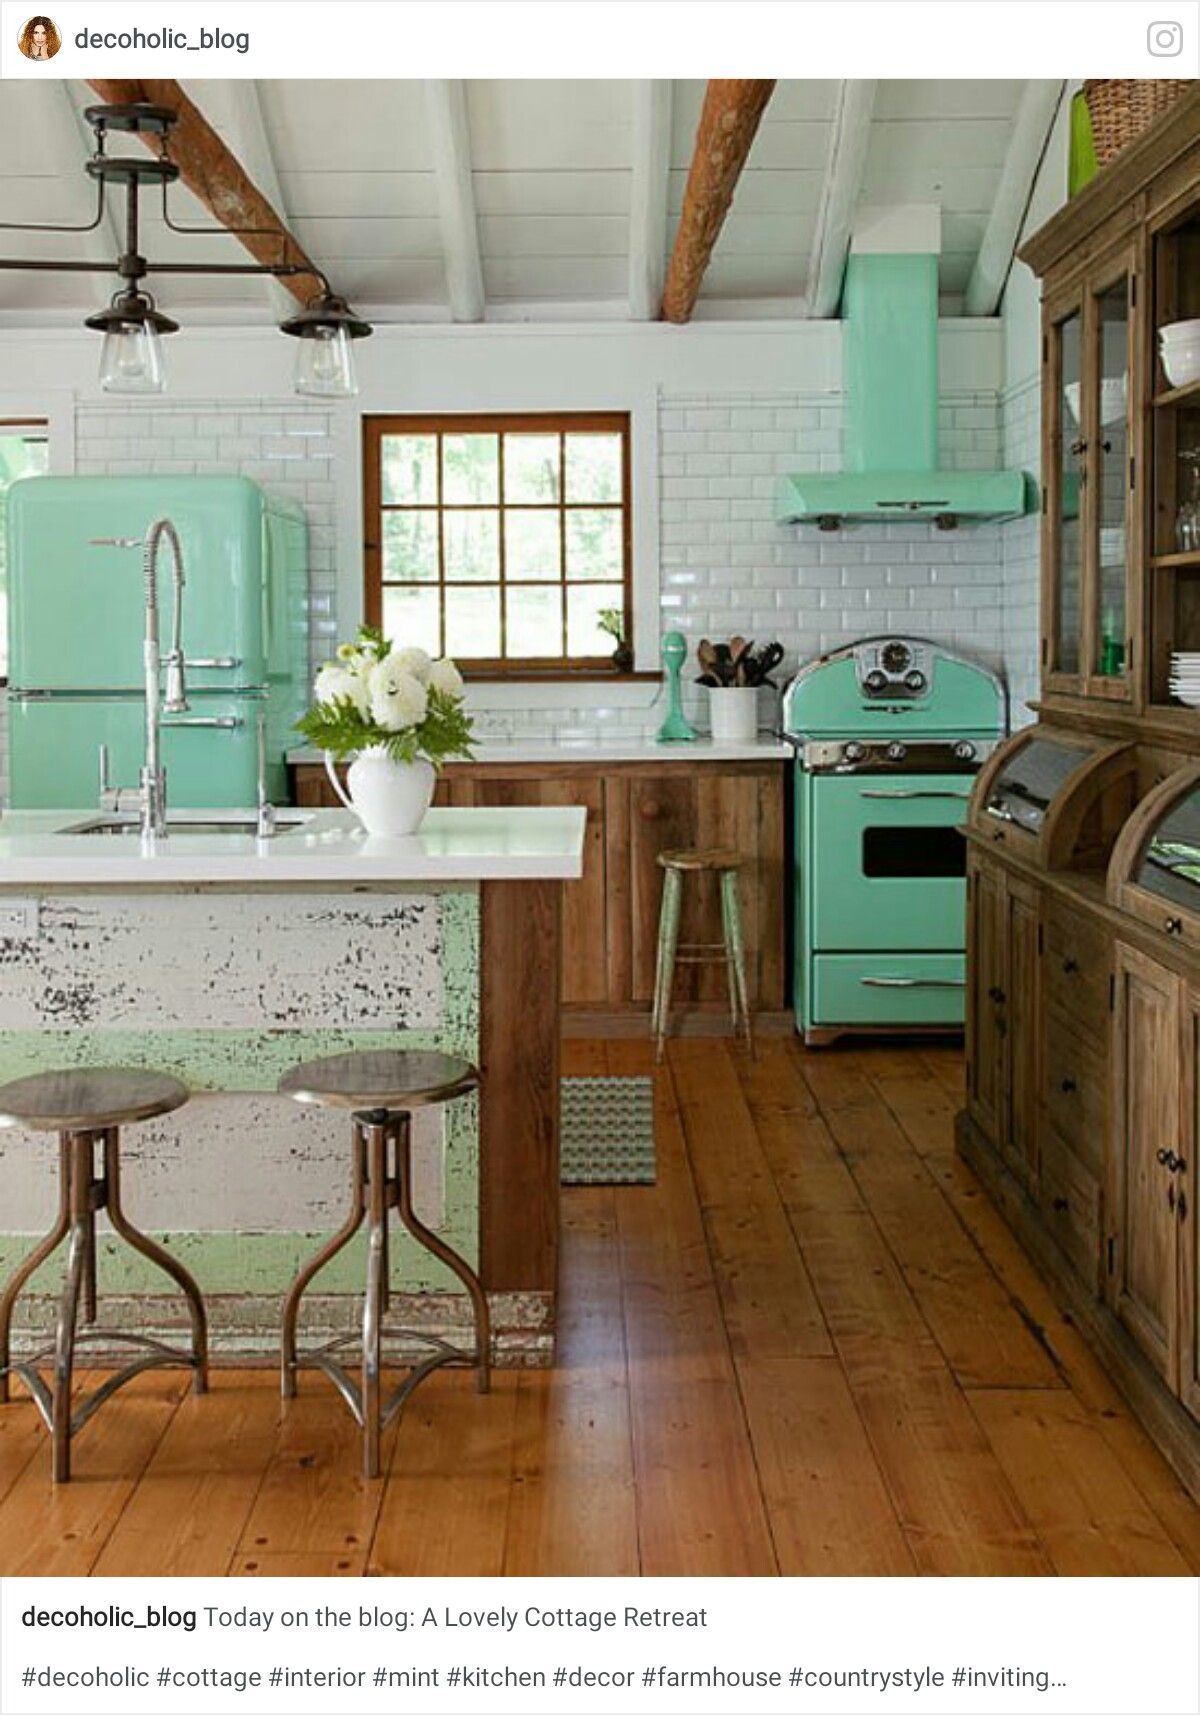 Pin von Yonnie Smith auf Stylish Kitchens - The Farmhouse/Country ...